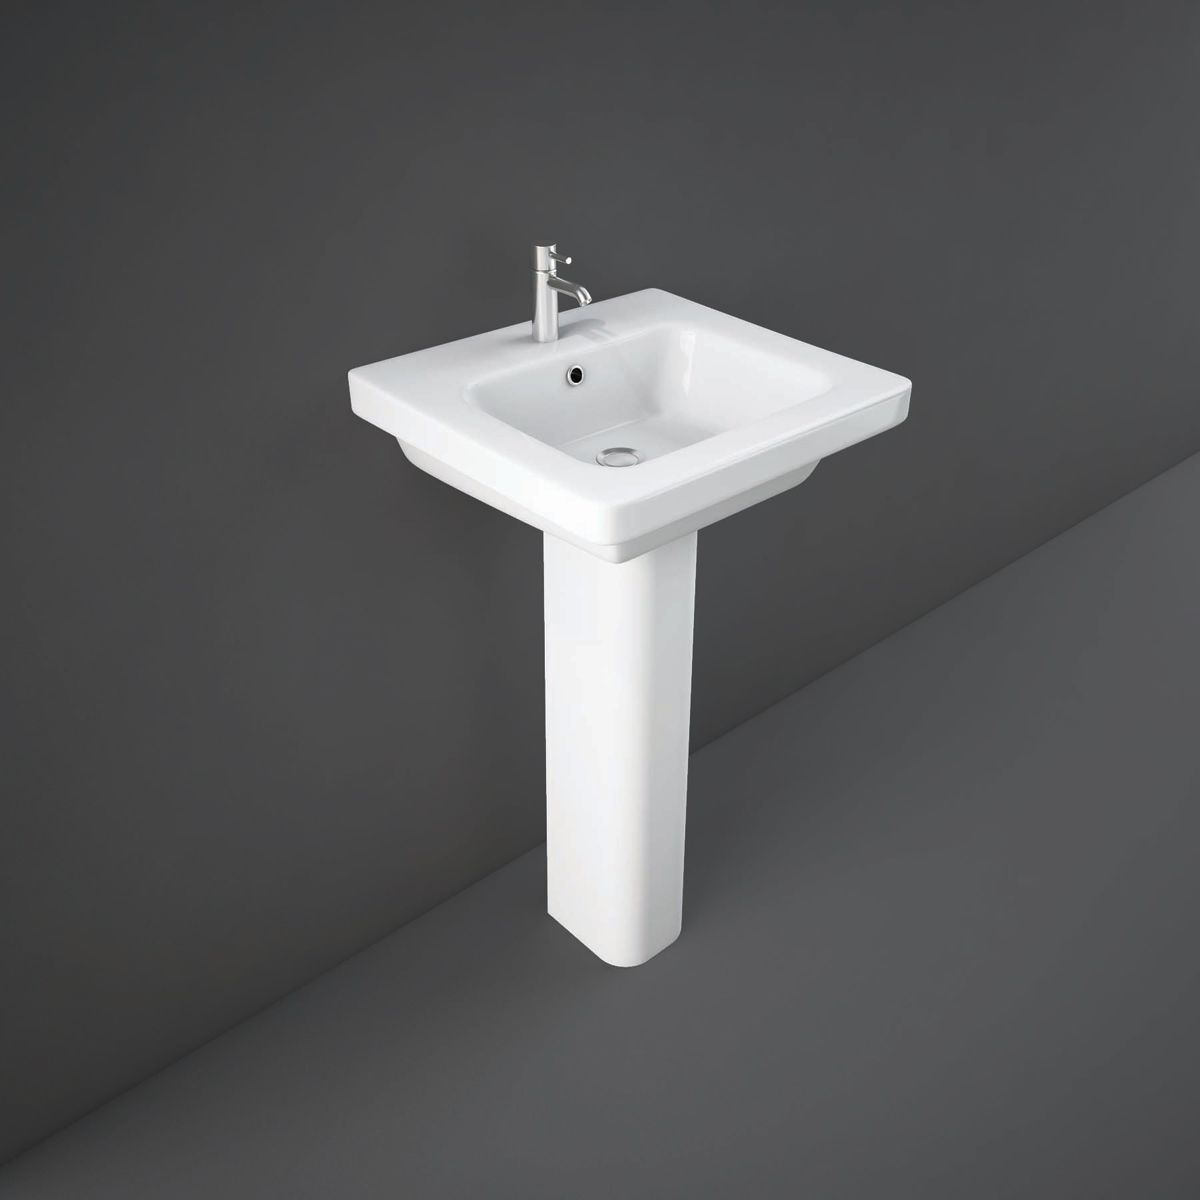 RAK Resort Basin 1 Tap Hole 550mm with Full Pedestal